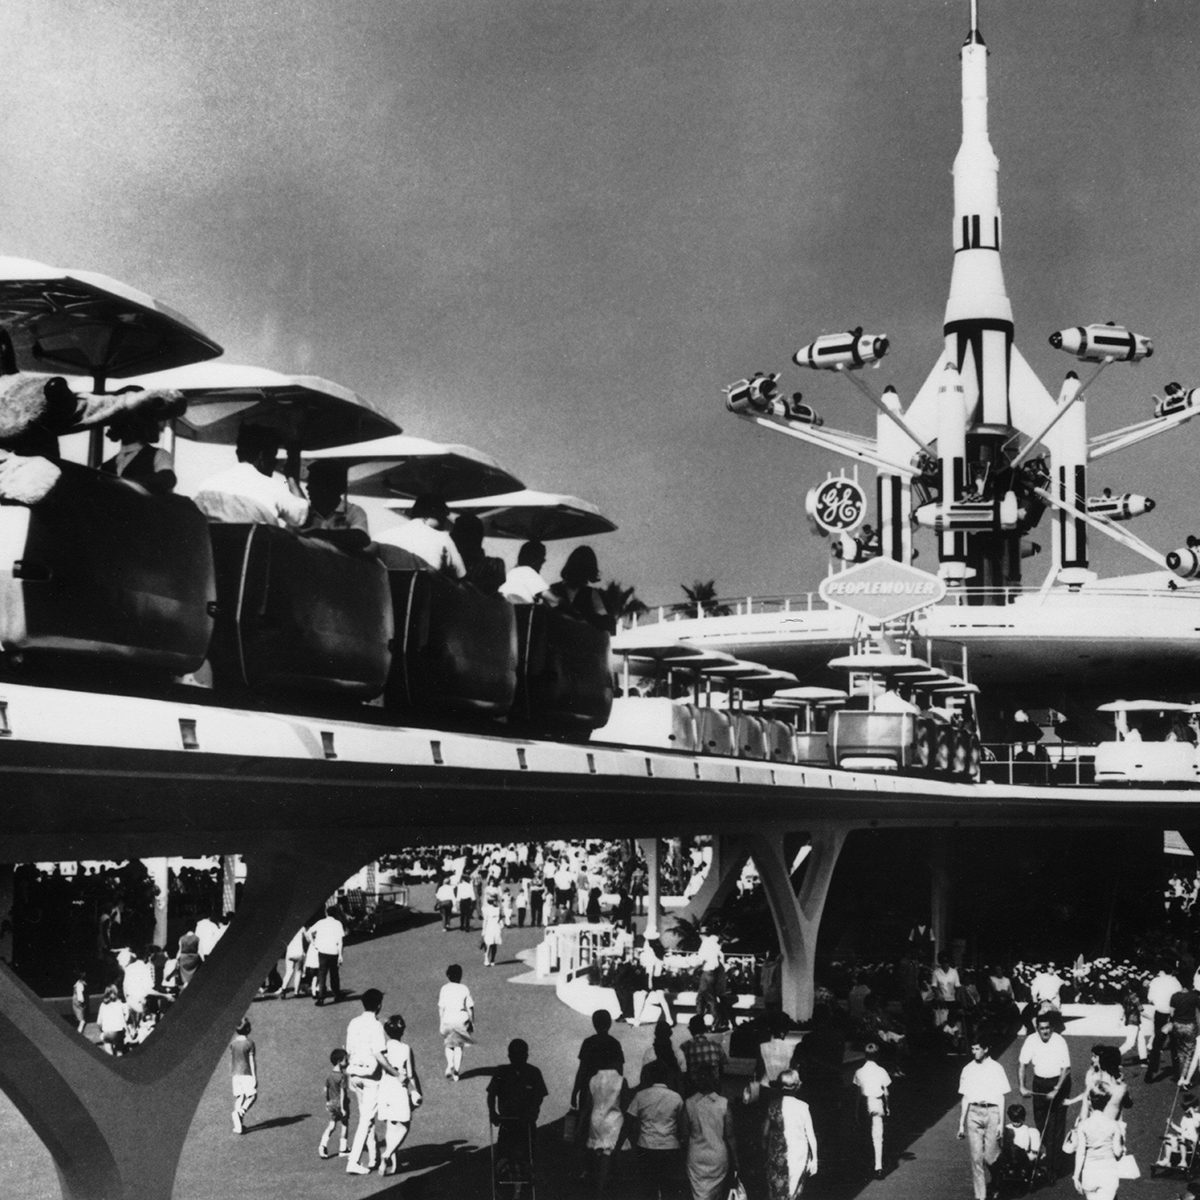 UNITED STATES - JANUARY 01: May 13, 1968 view of the California Disneyland, with its then-new PEOPLE MOVER ride in the background. (Photo by Keystone-France/Gamma-Keystone via Getty Images)